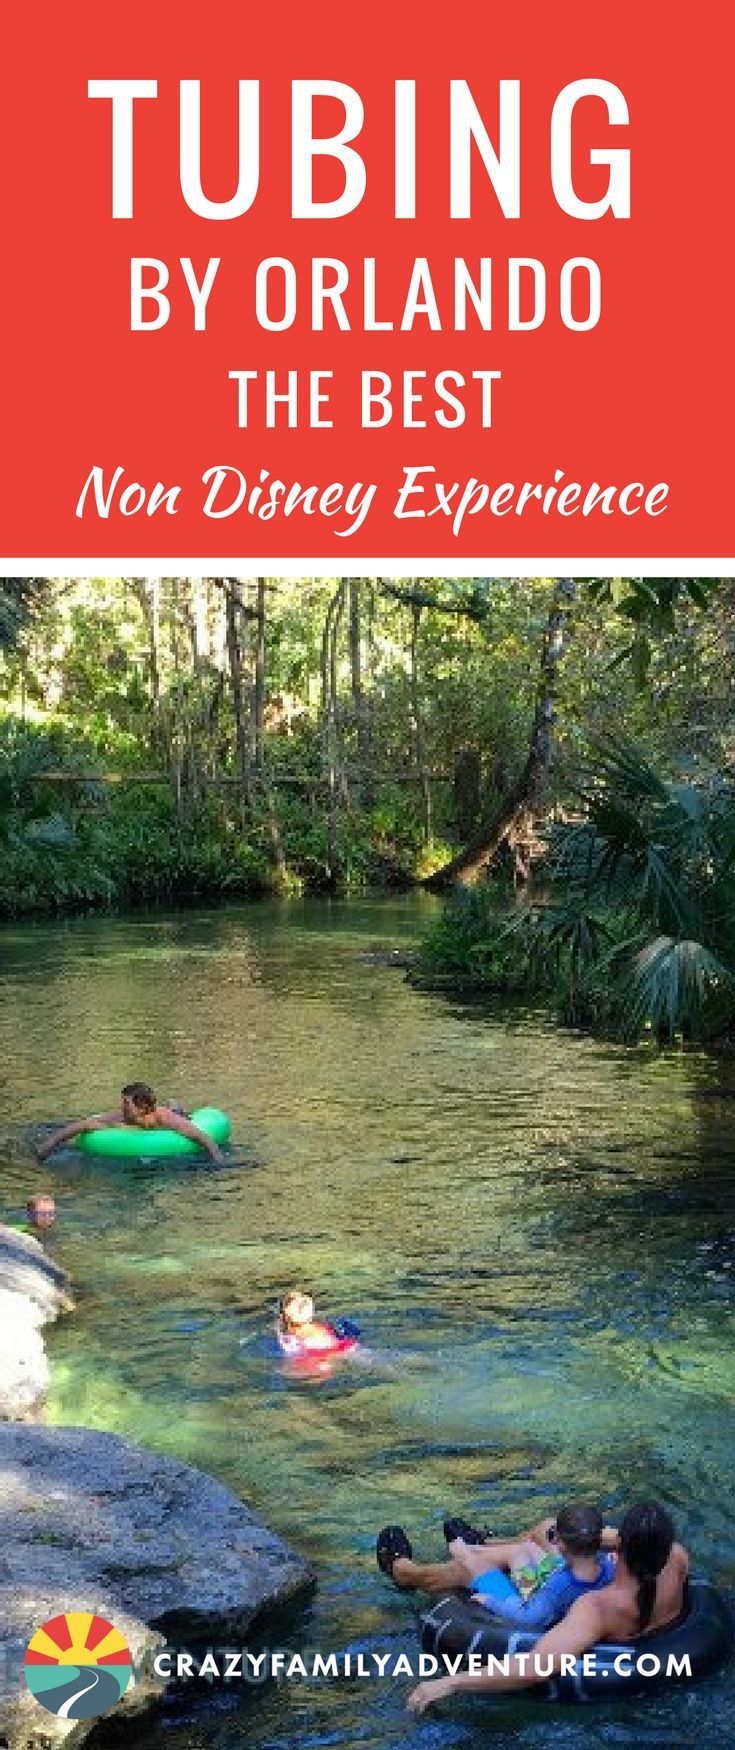 Tubing by Orlando, Florida. The best Non Disney experience in #Orlando. Great family travel destination idea of something to do other than Disney World in Orlando, Florida with kids is tubing down the Kelly Rock Springs #nondisneyexperience #tubing #thingstodoinorlando #familytravel #kellyrocksprings #florida